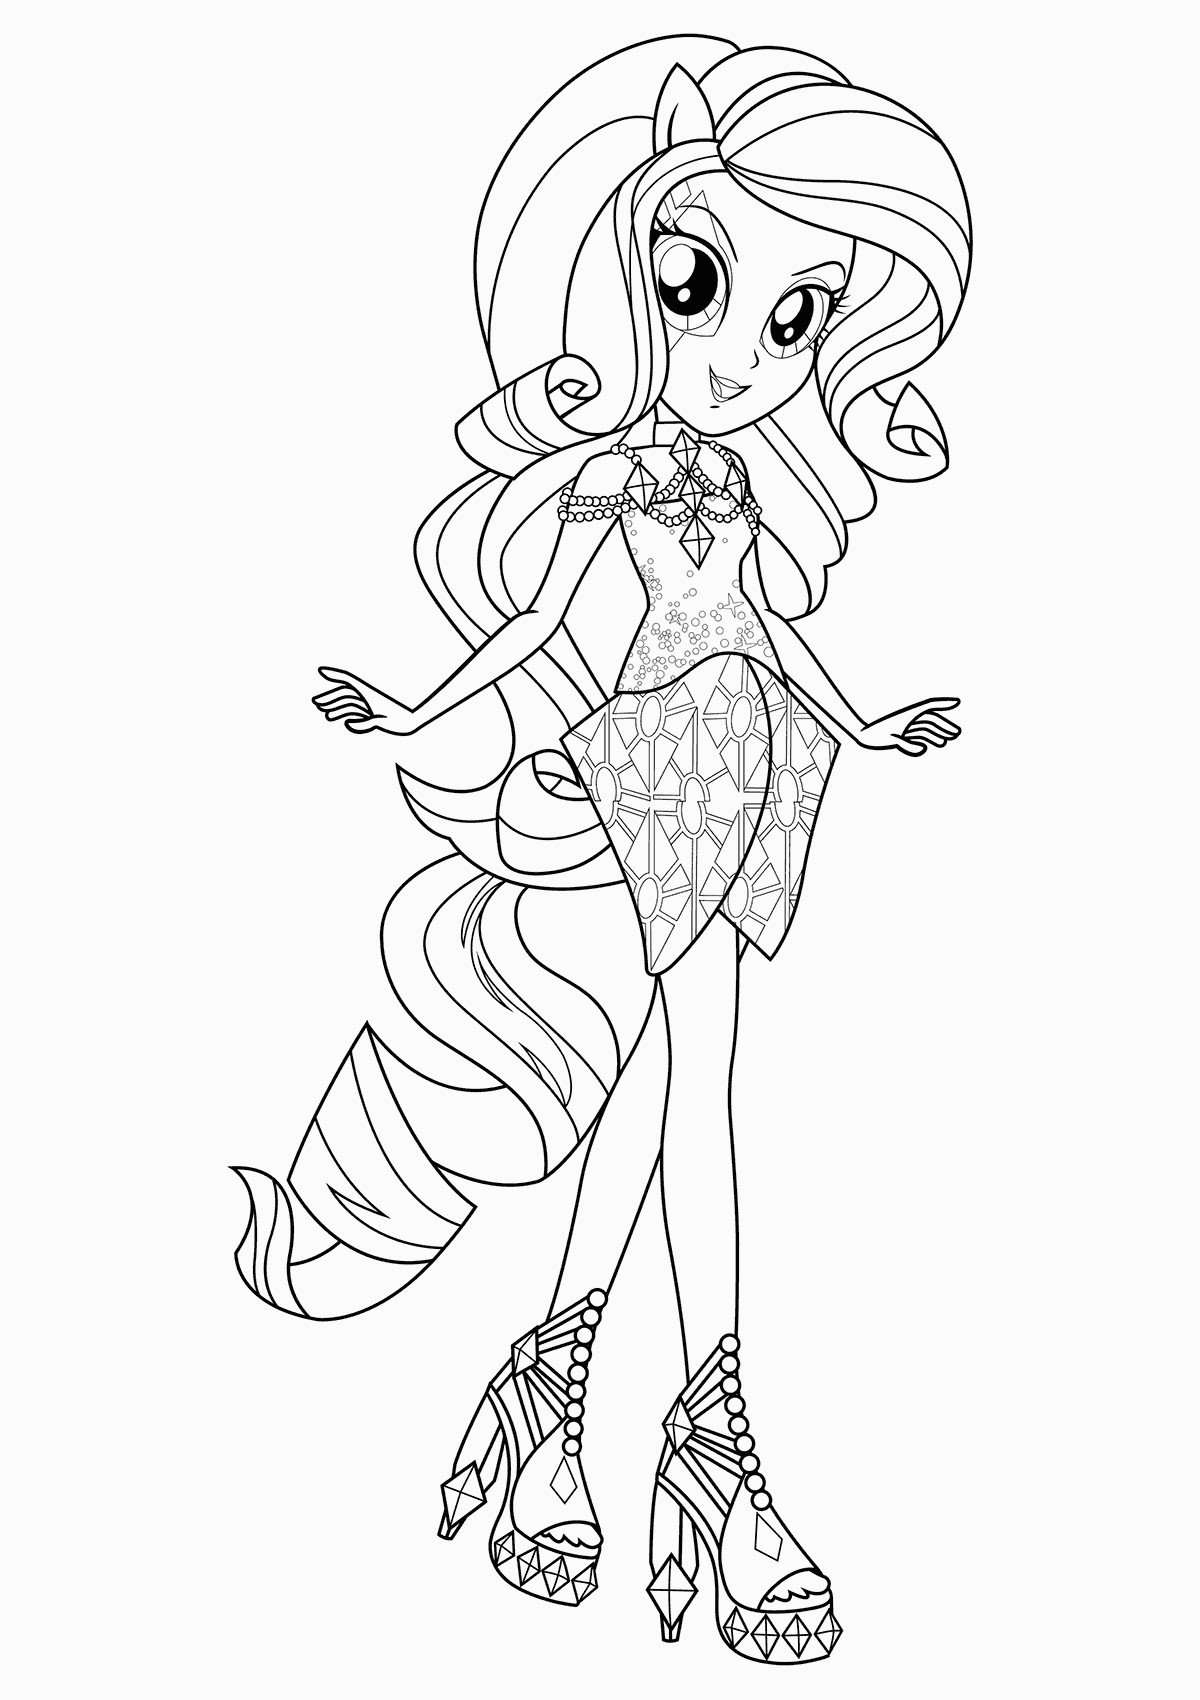 Coloriage My Little Pony Equestria Girl A Imprimer Equestria Girls Coloring Pages Best Coloring Pages for Kids